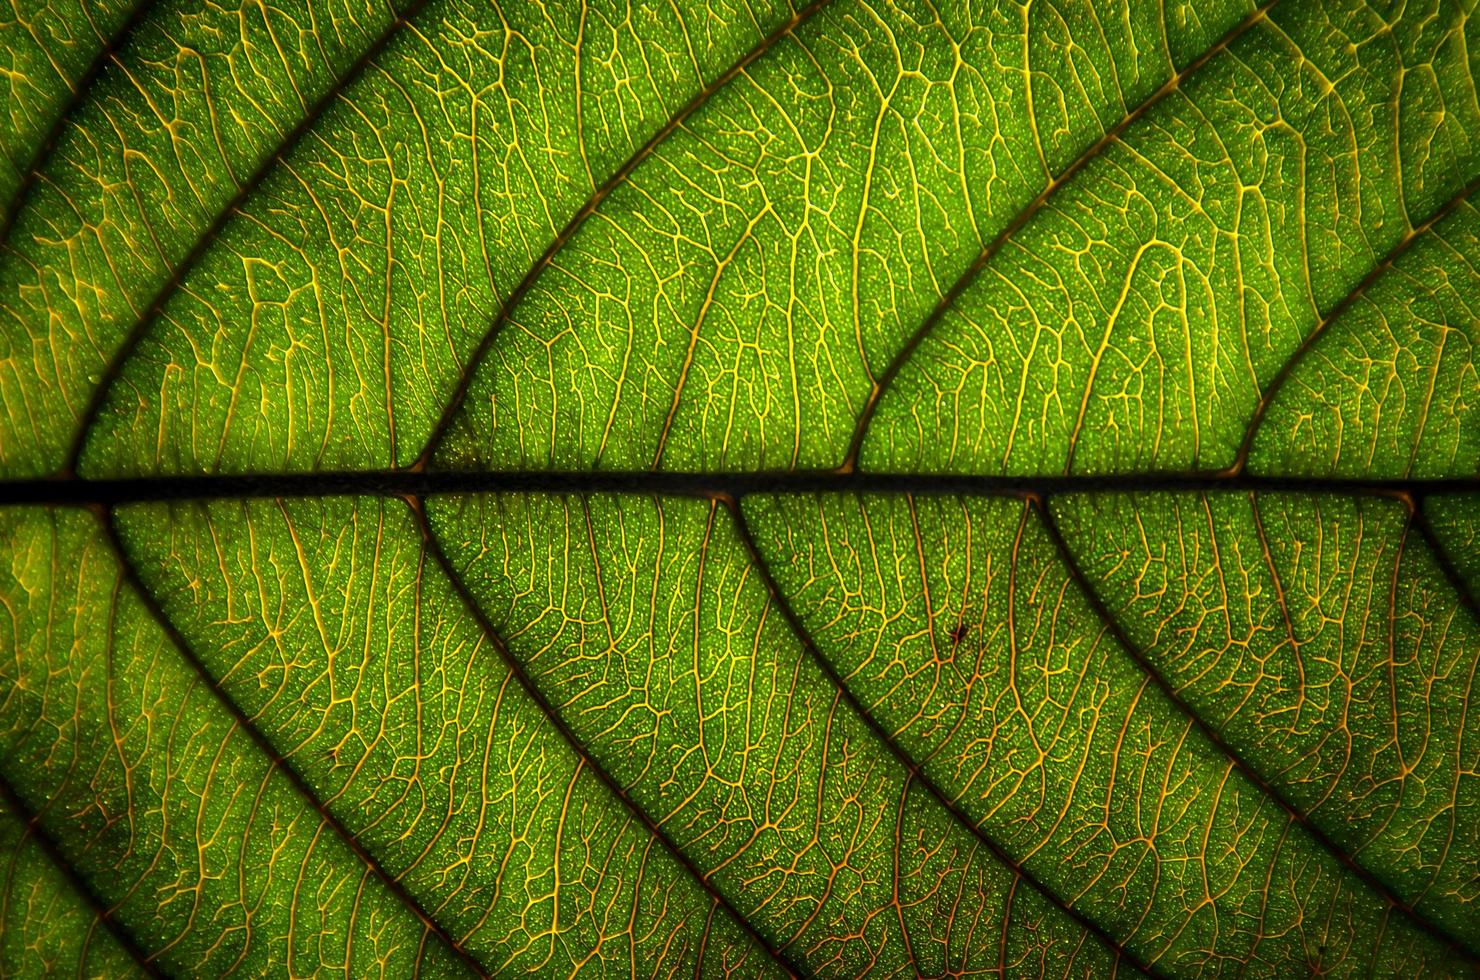 Green leaves texture and leaf fiber, Wallpaper by detail of green leaf photo